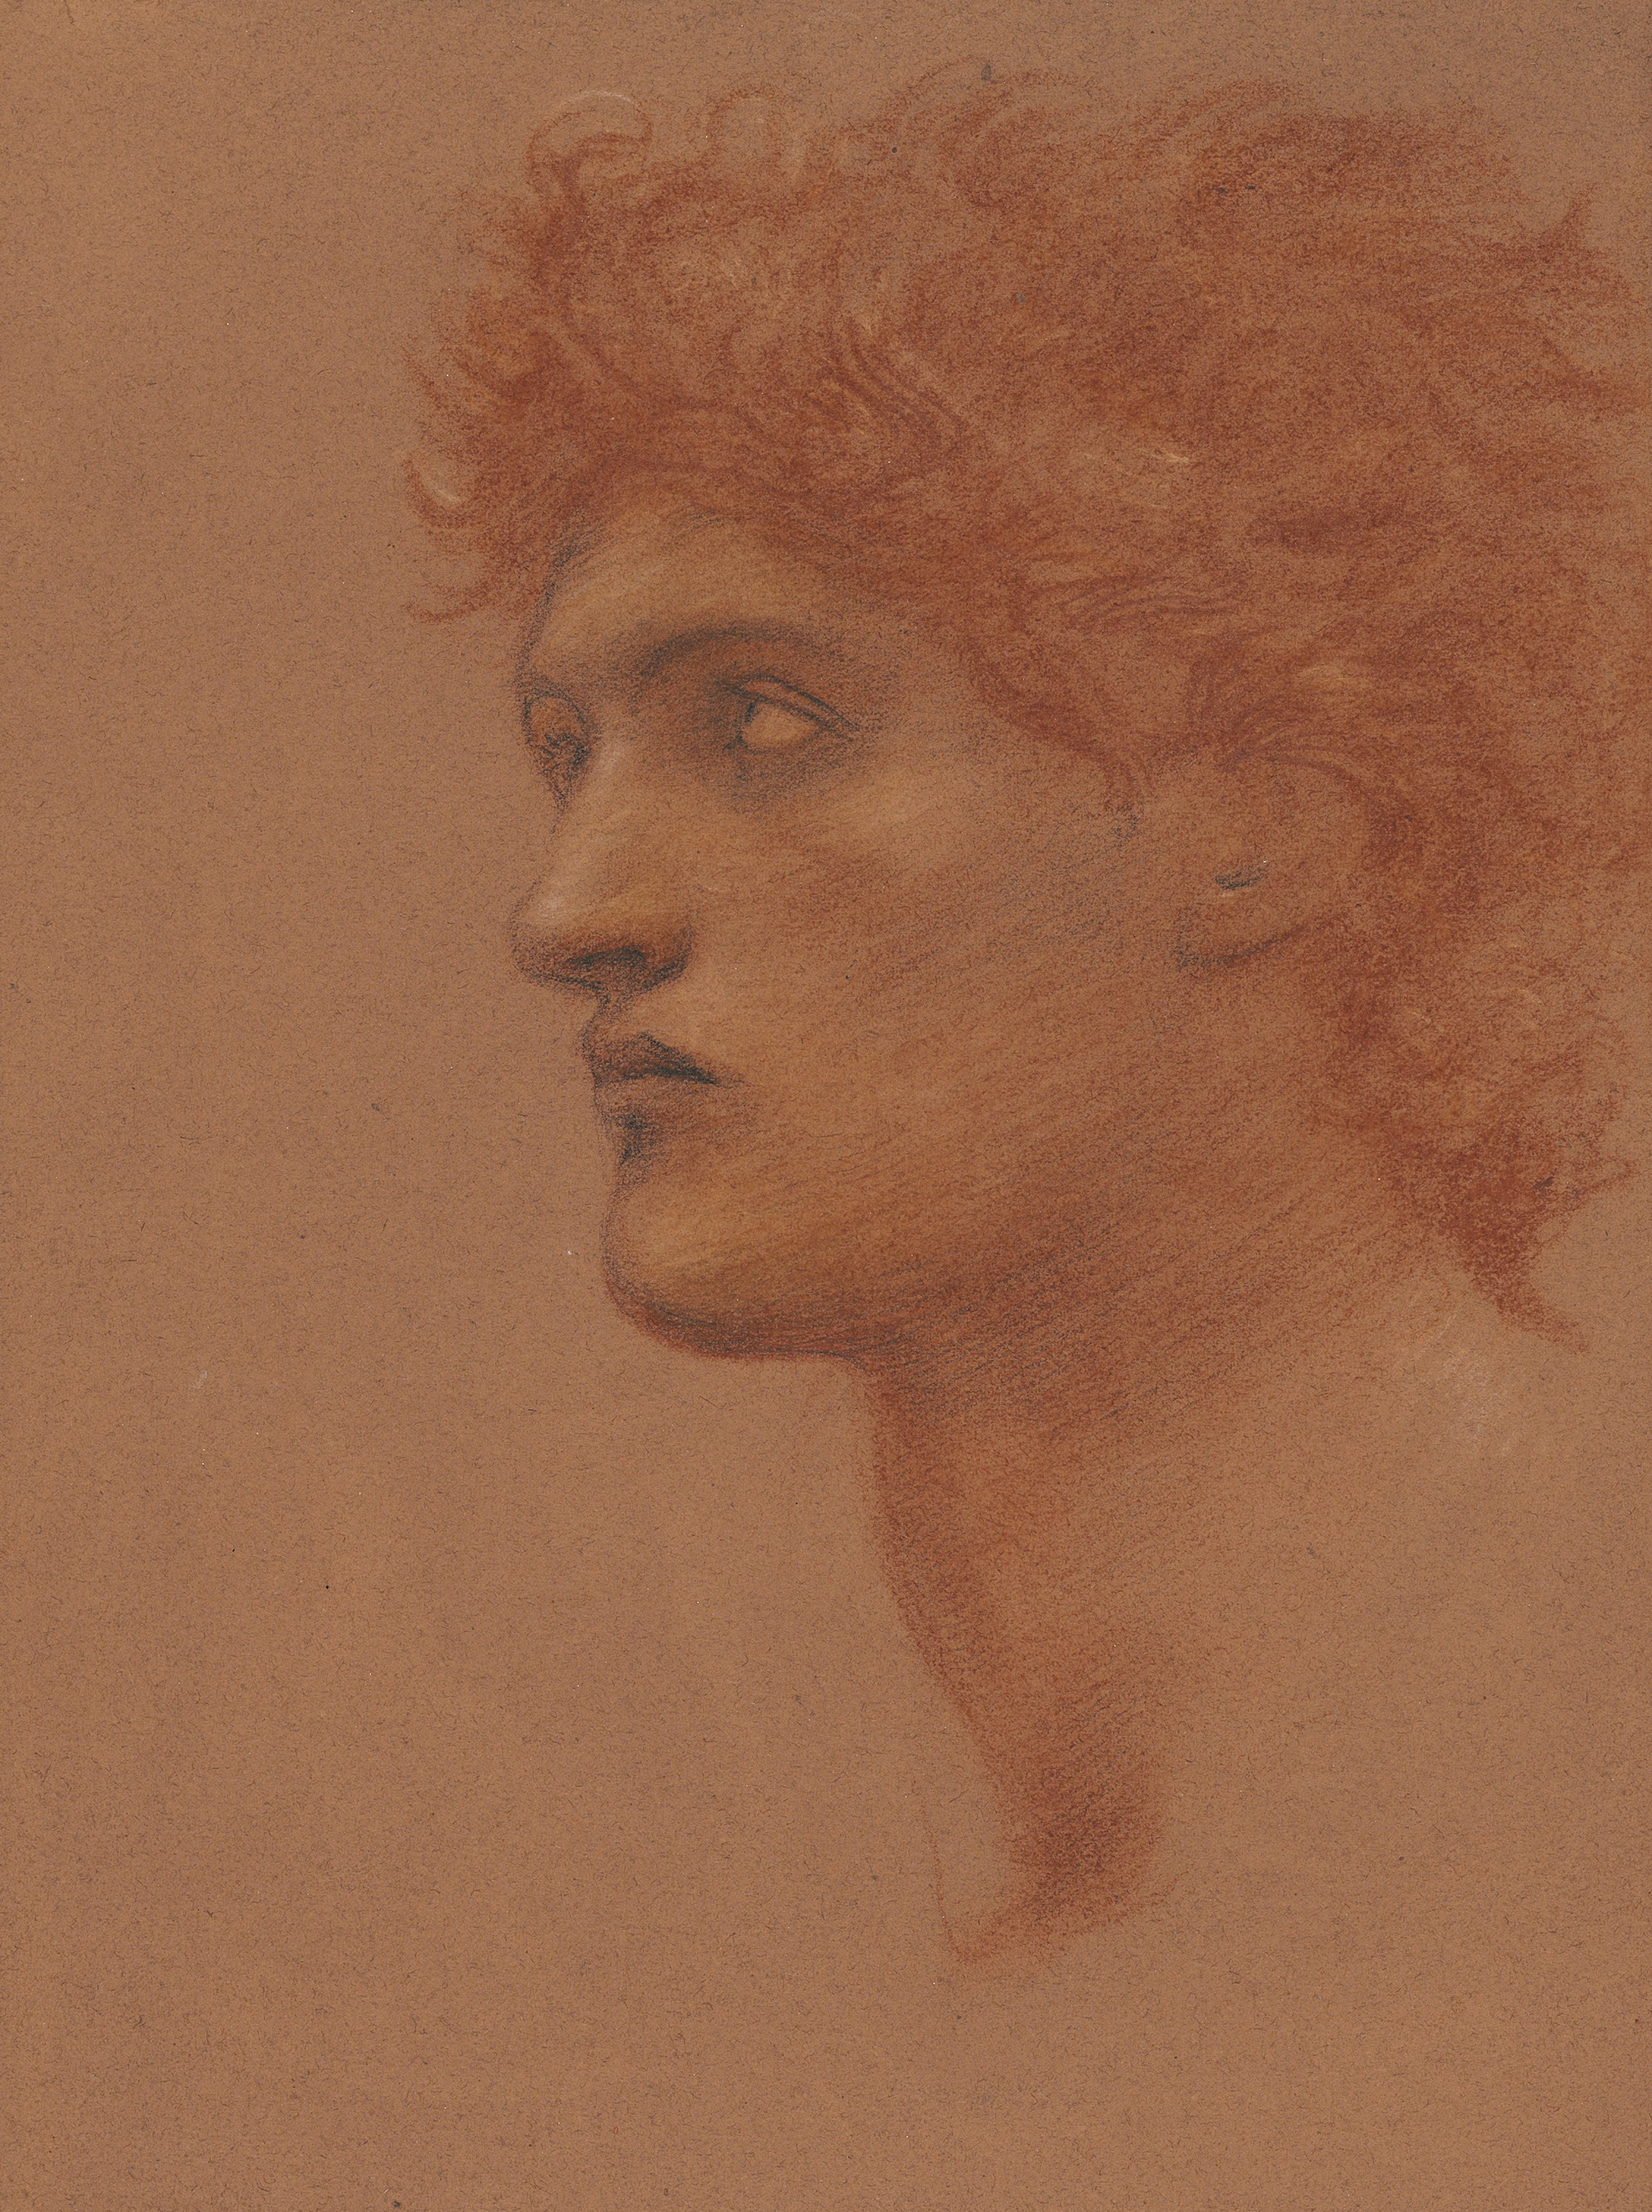 Sir Edward Coley Burne-Jones (1833-1898), Study of a male head in profile, for Perseus in The Call of Perseus. Sanguine, black and white chalk on terracotta paper. 15⅝ x 12¼ in (39.7 x 31 cm). Estimate £15,000-20,000. Offered inBritish and European Arton 15 July 2021 at Christie's in London